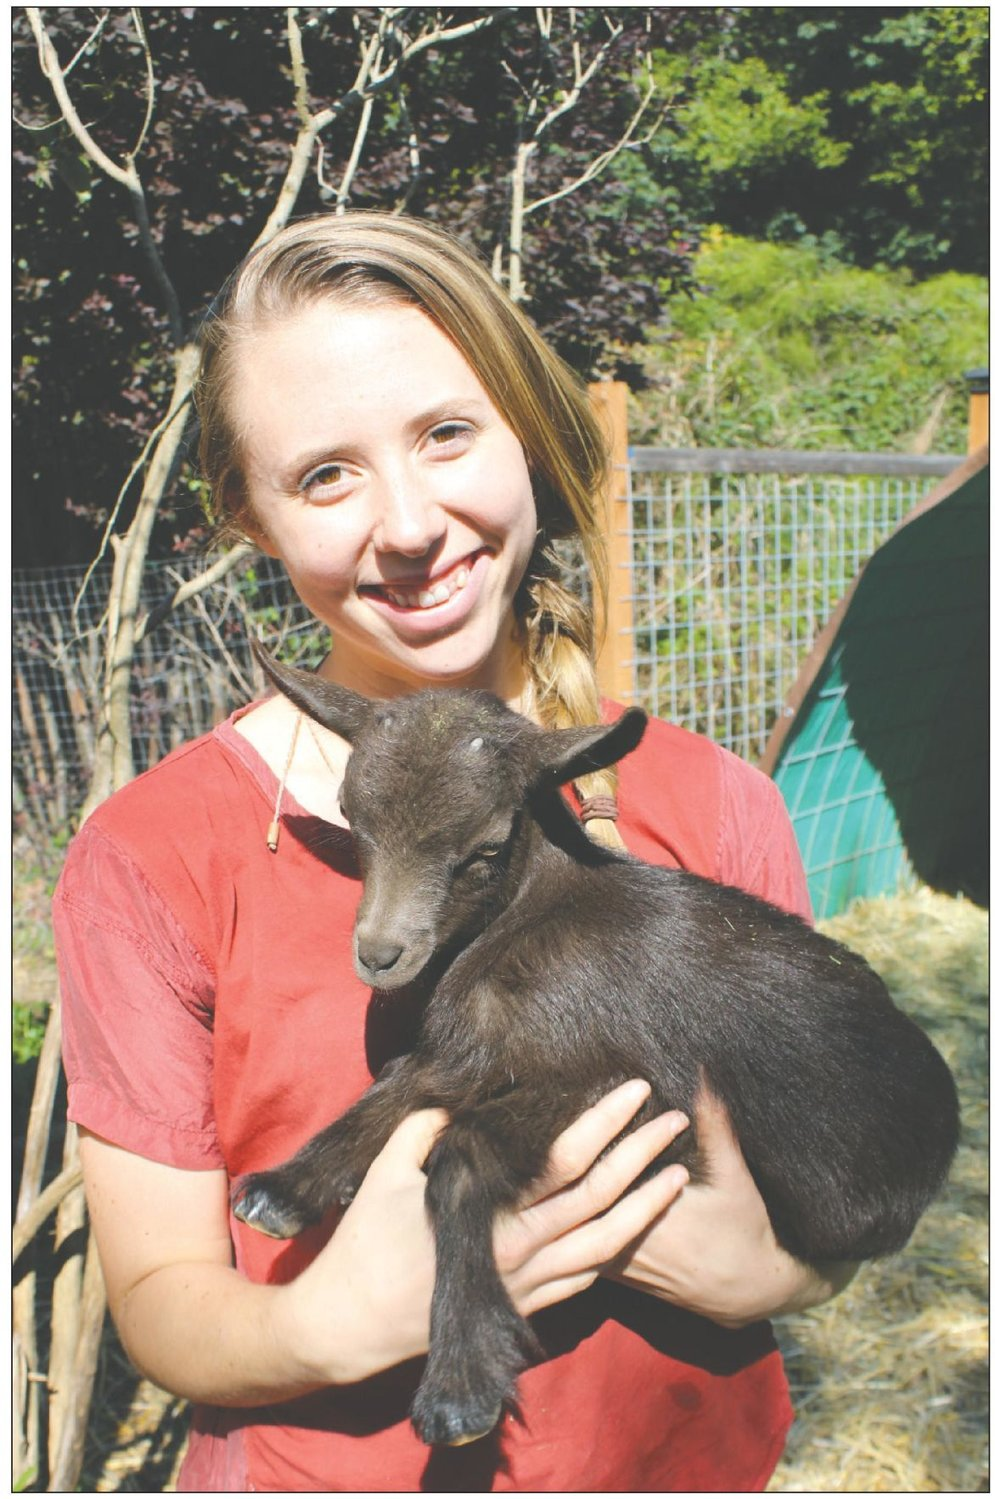 Grace Thompson, co-owner of Kodama Farm & Food Forest holds one of their baby goats they are raising to eventually make goat cheese.